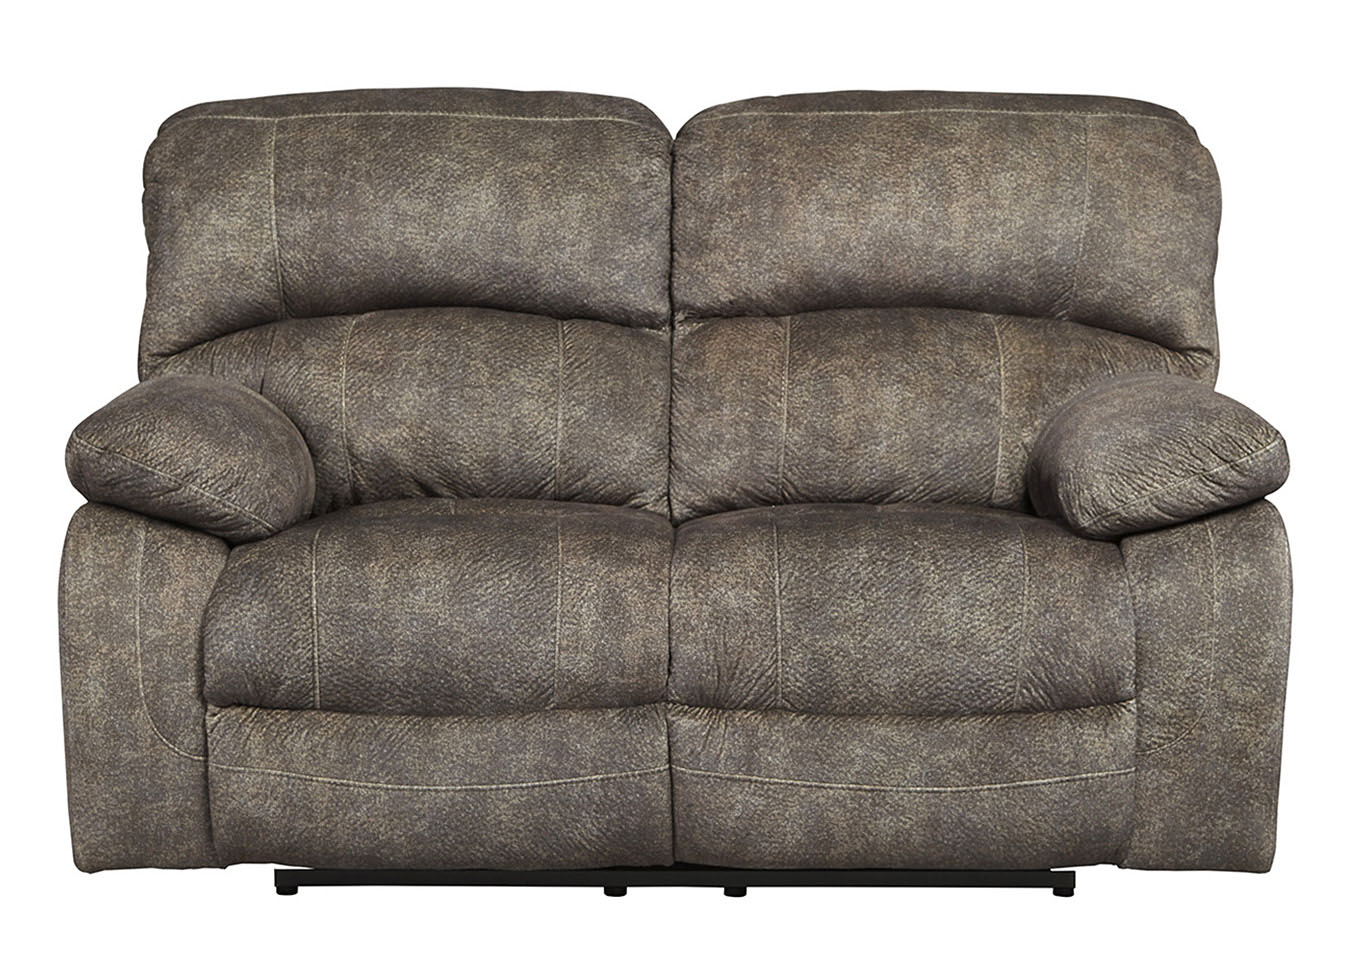 Cannelton Tri-Tone Gray Power Reclining Loveseat,Signature Design By Ashley